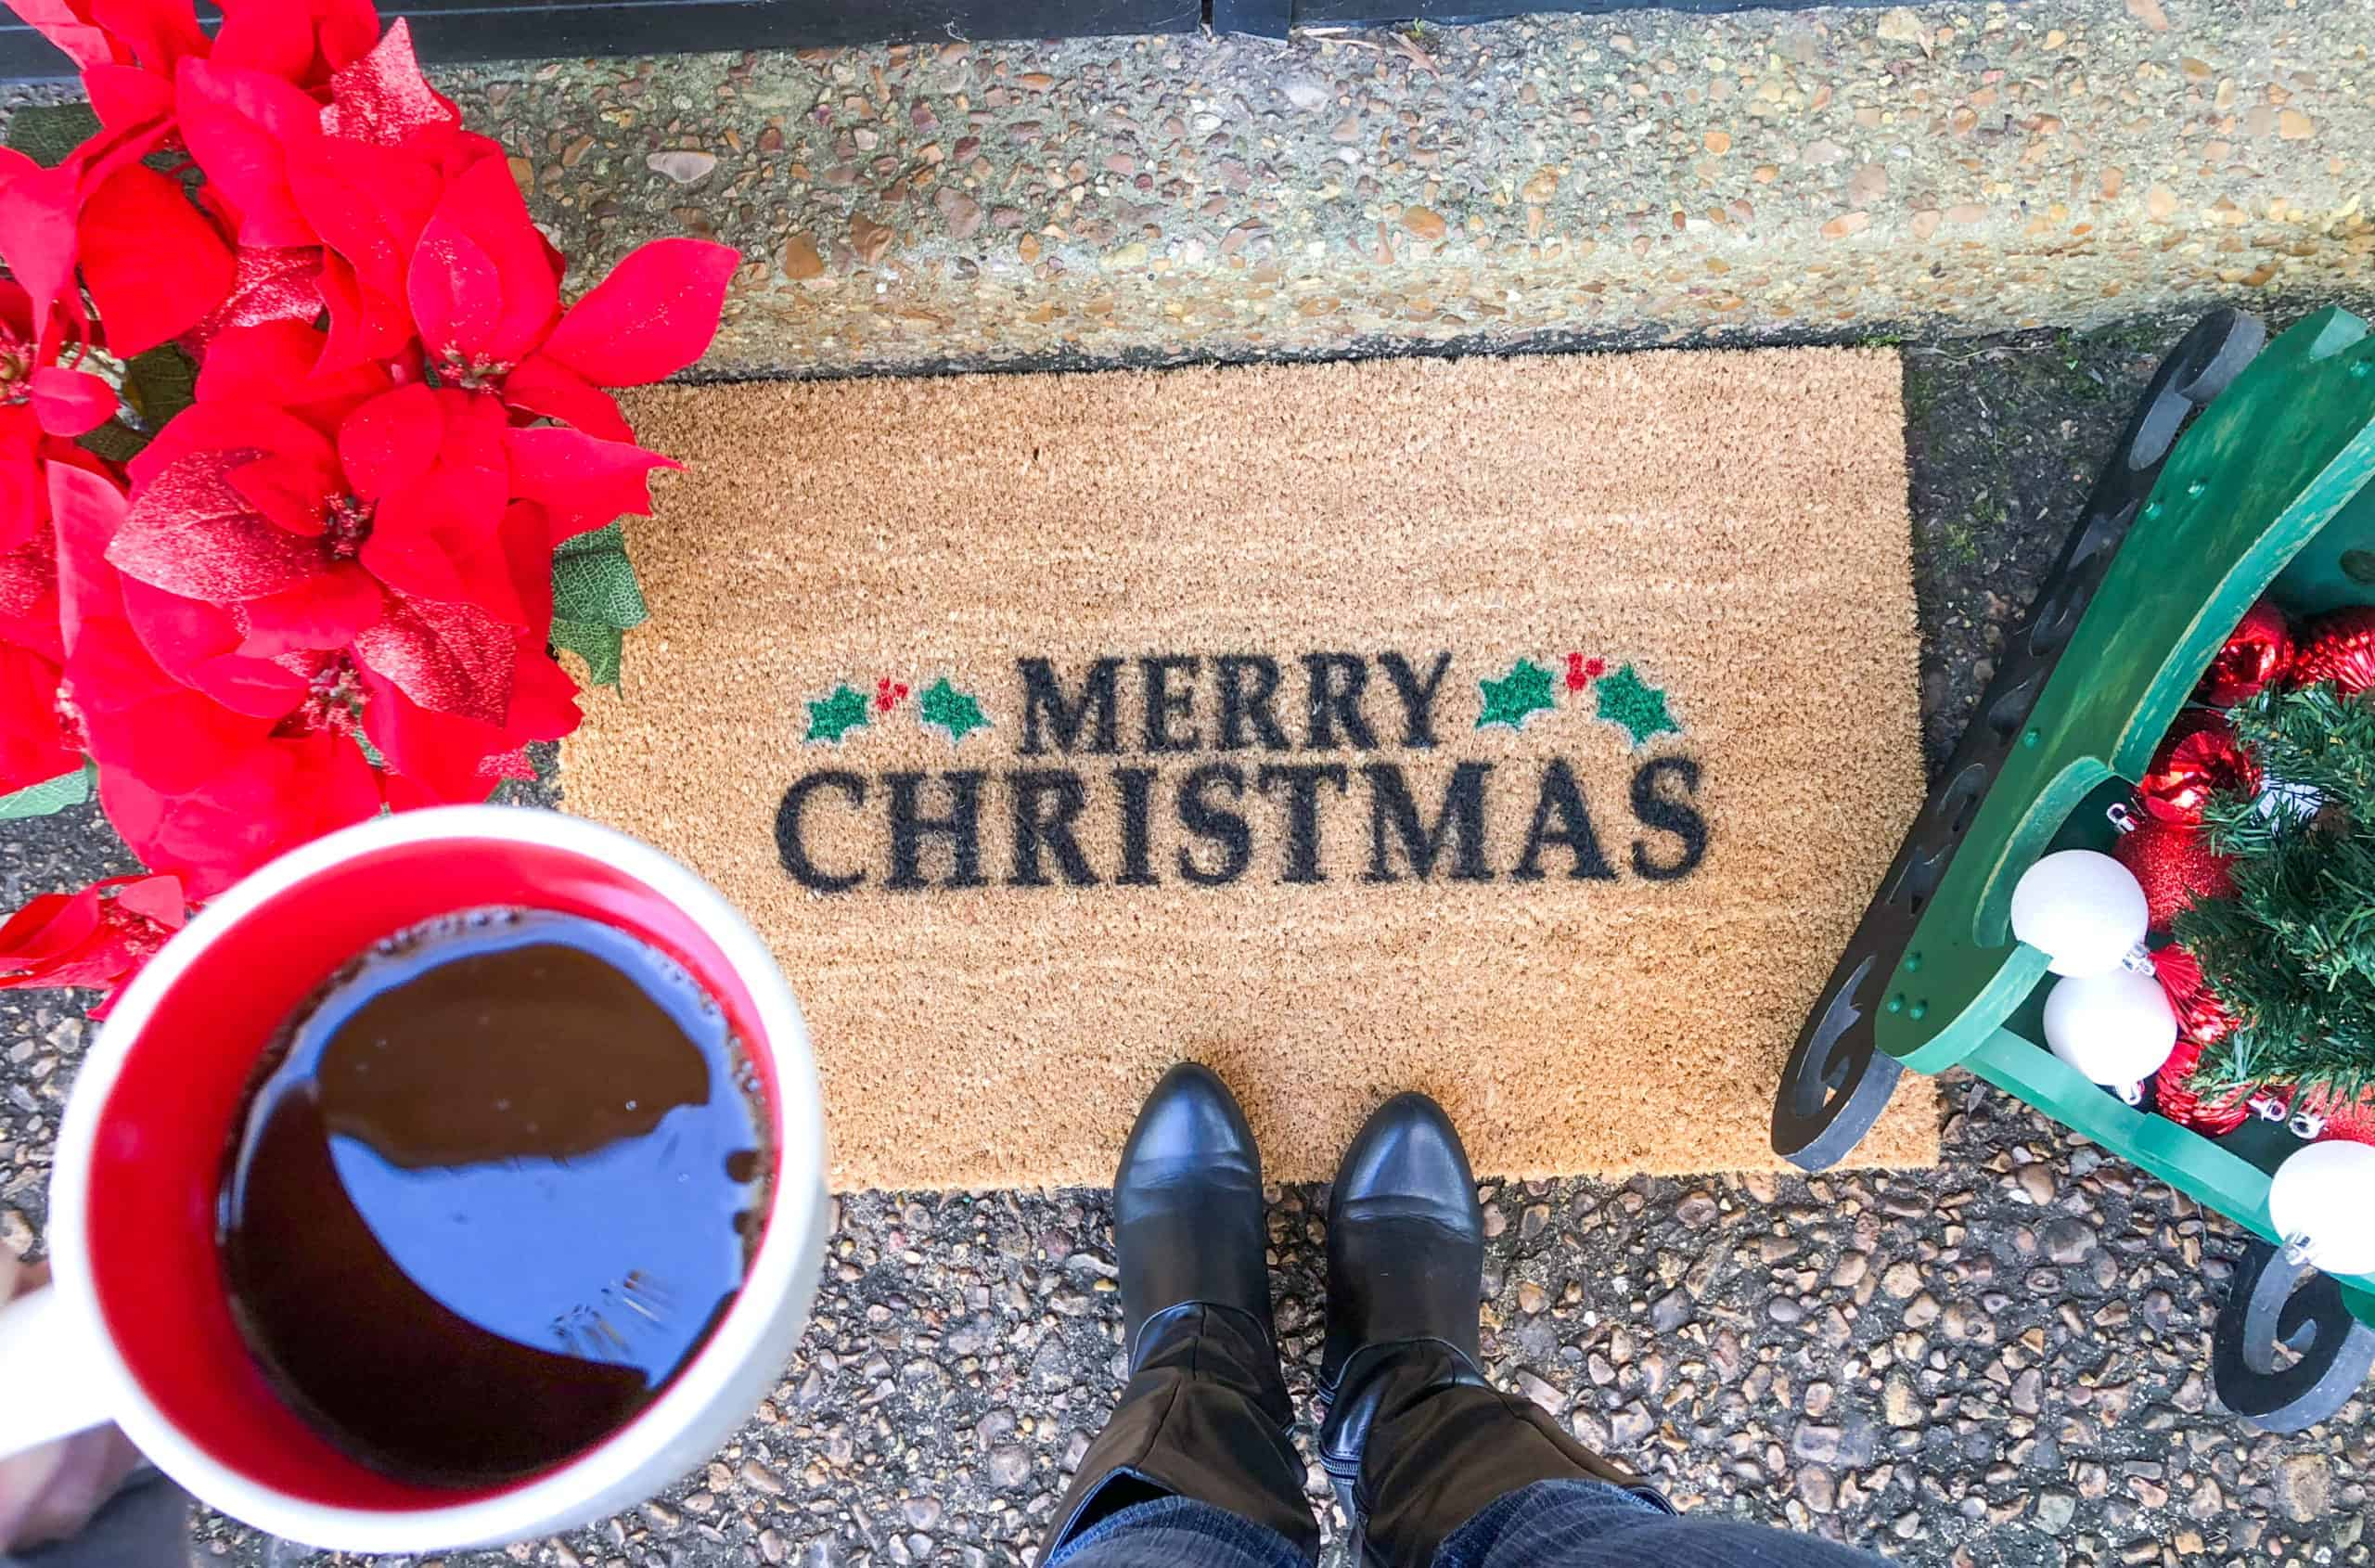 A welcome mat is one of the first things that guests see when entering your home.  So, why not welcome them this season with a festive DIY Christmas doormat?